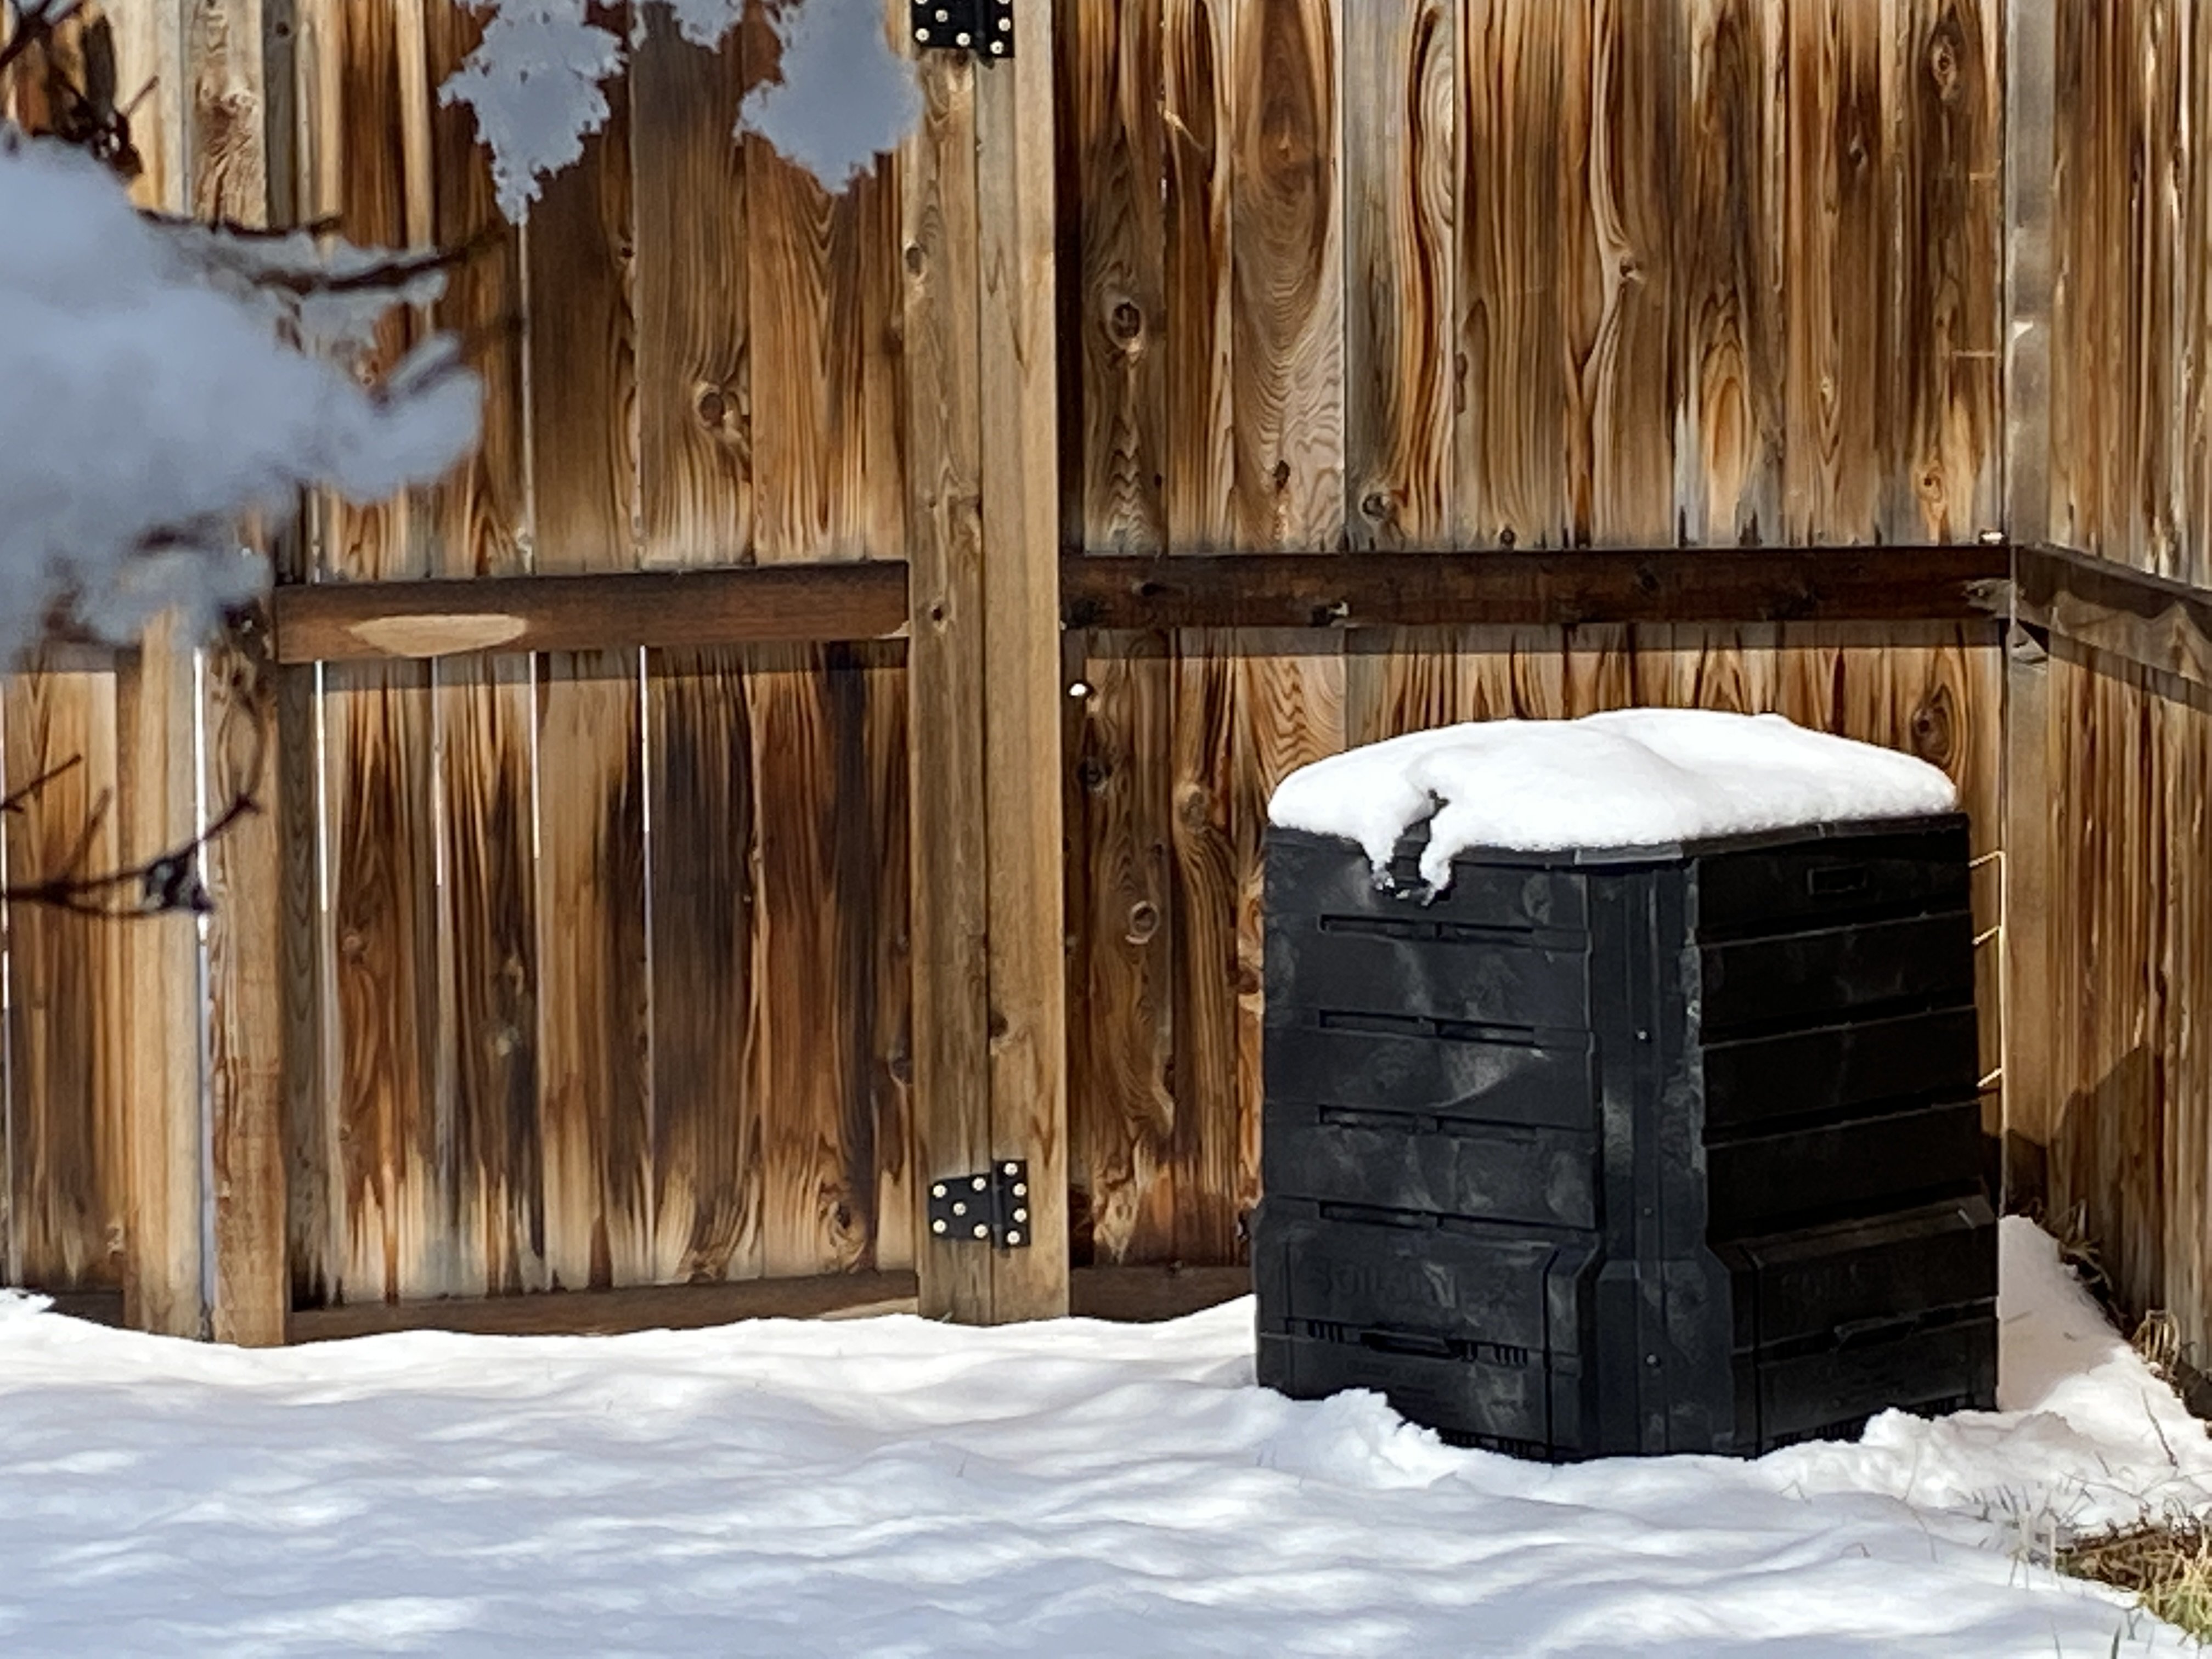 Backyard Composter in Montana.